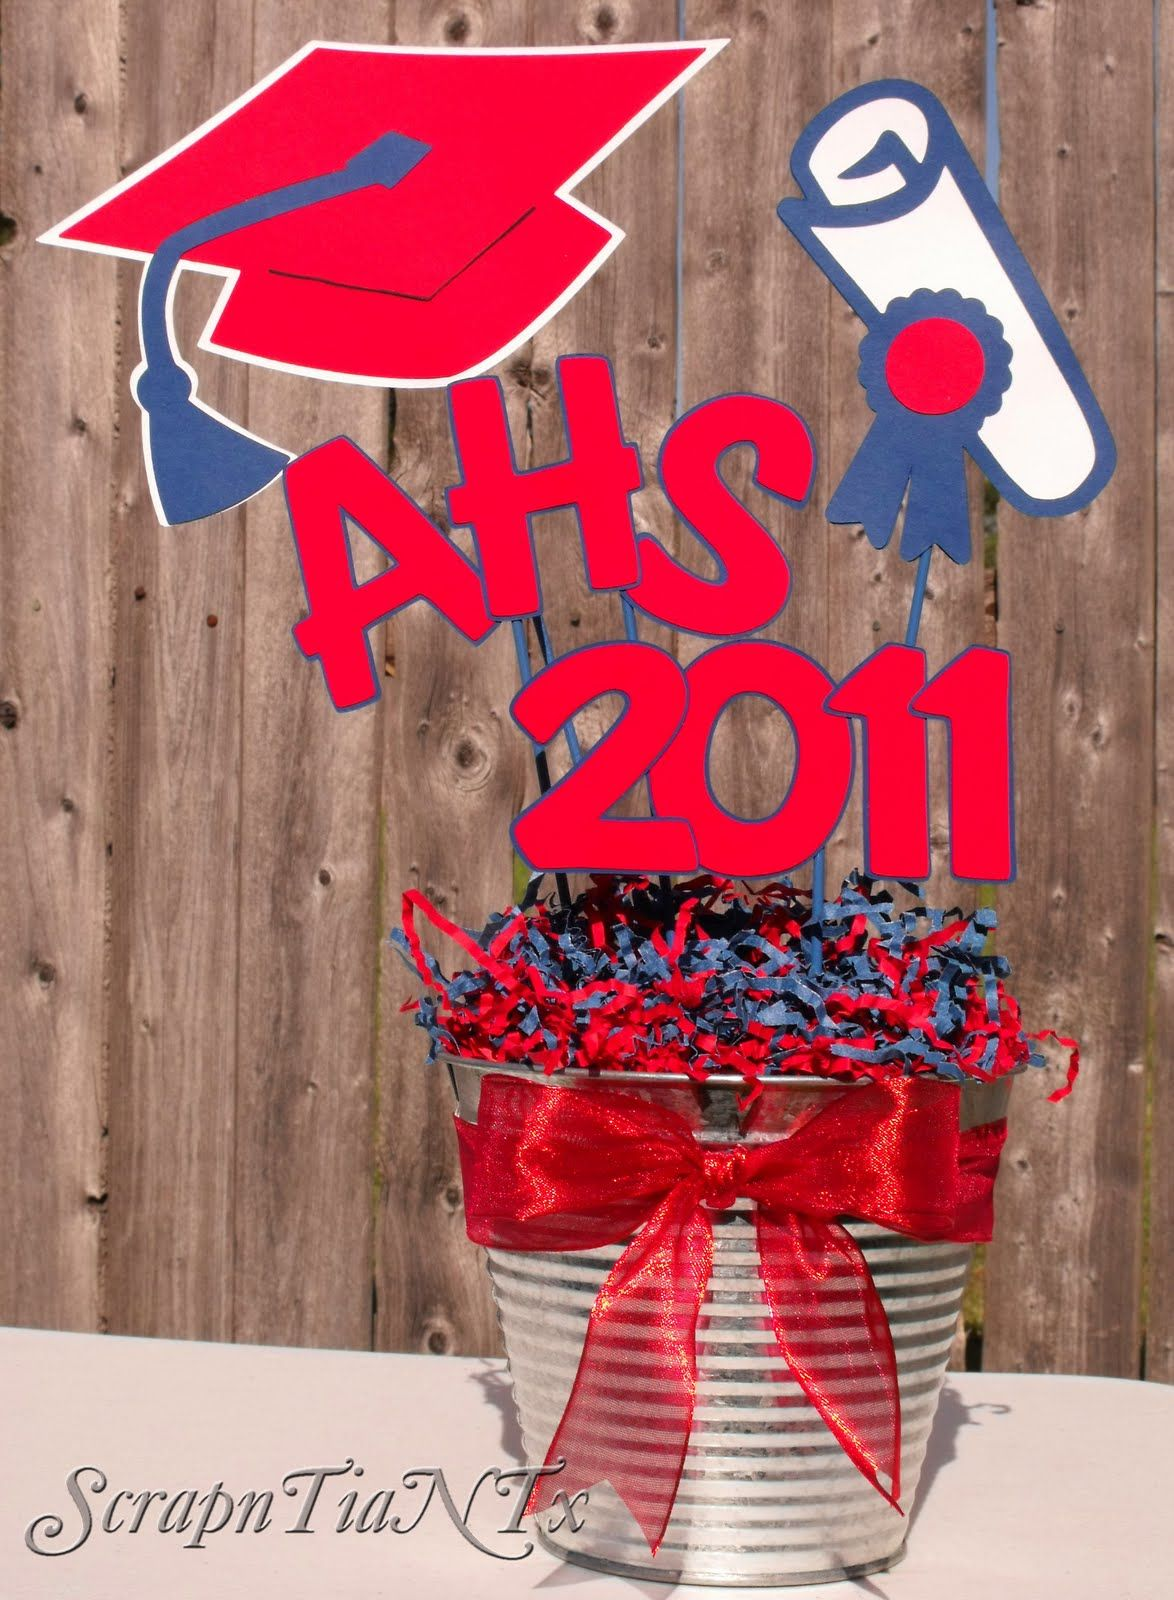 Graduation table decorations homemade - A Scrapn Tia N Tx Homemade Graduation Centerpiece